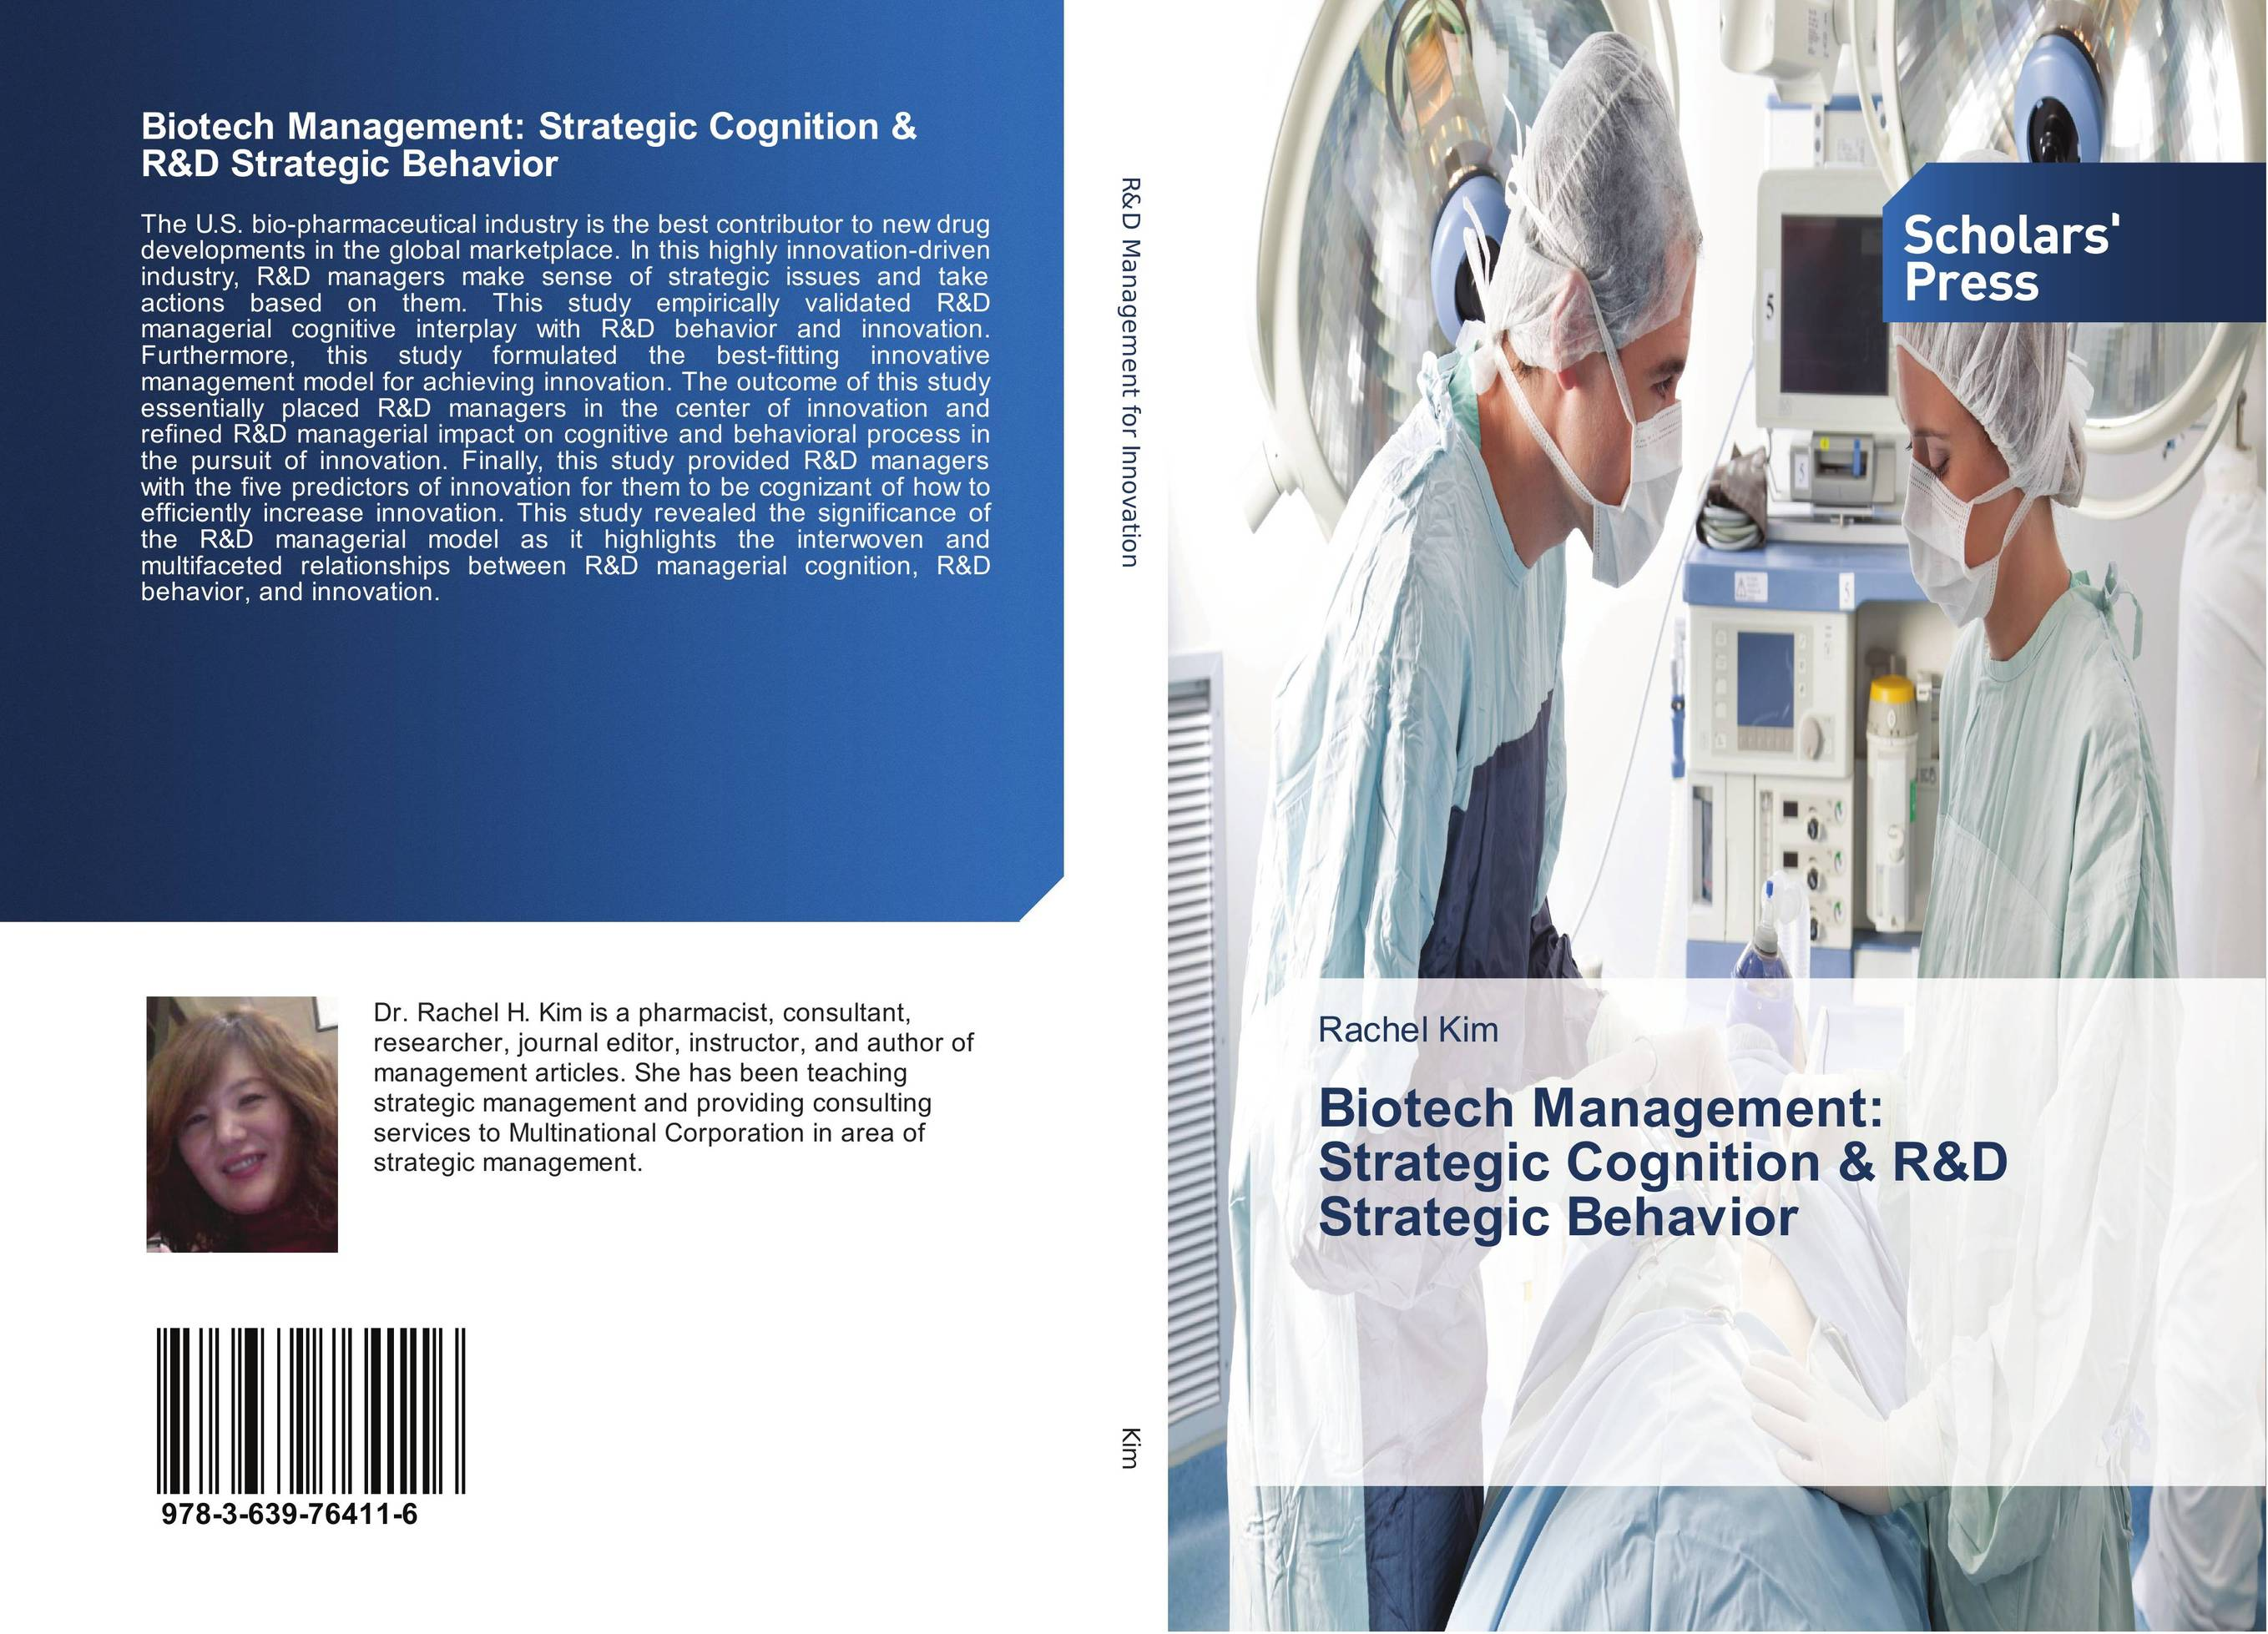 Biotech Management: Strategic Cognition & R&D Strategic Behavior b p r d hell on earth volume 6 the return of the master